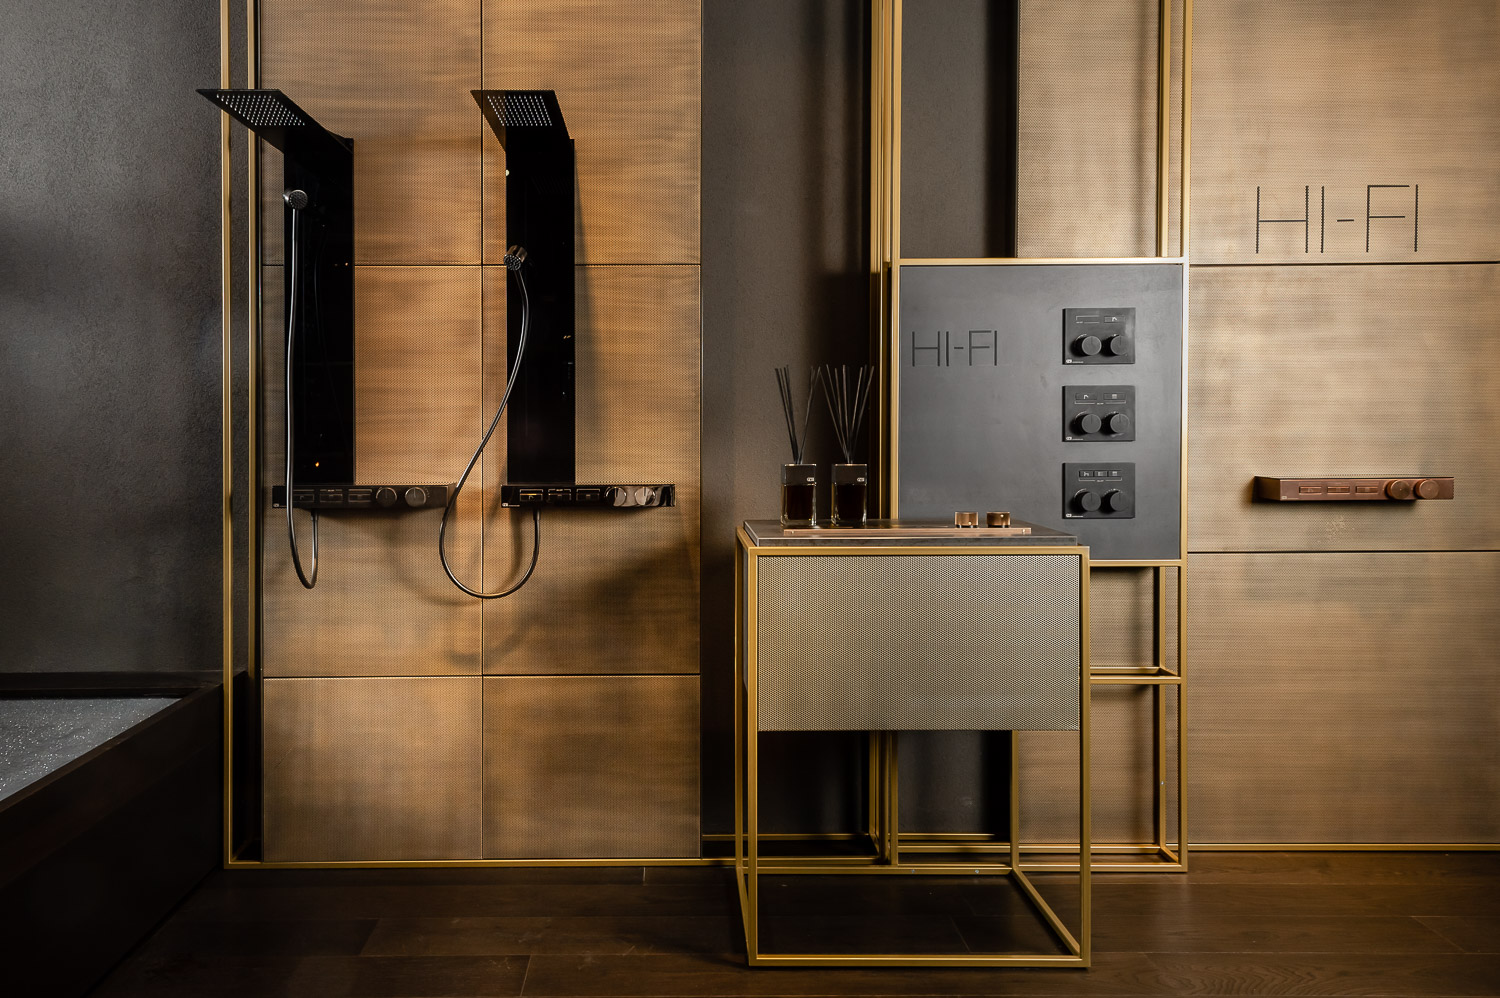 Hi-Fi  by Gessi unites design and technology in a contemporary and original collection, perfect for furnishing the bathroom as a room of wellness, beauty and living well.